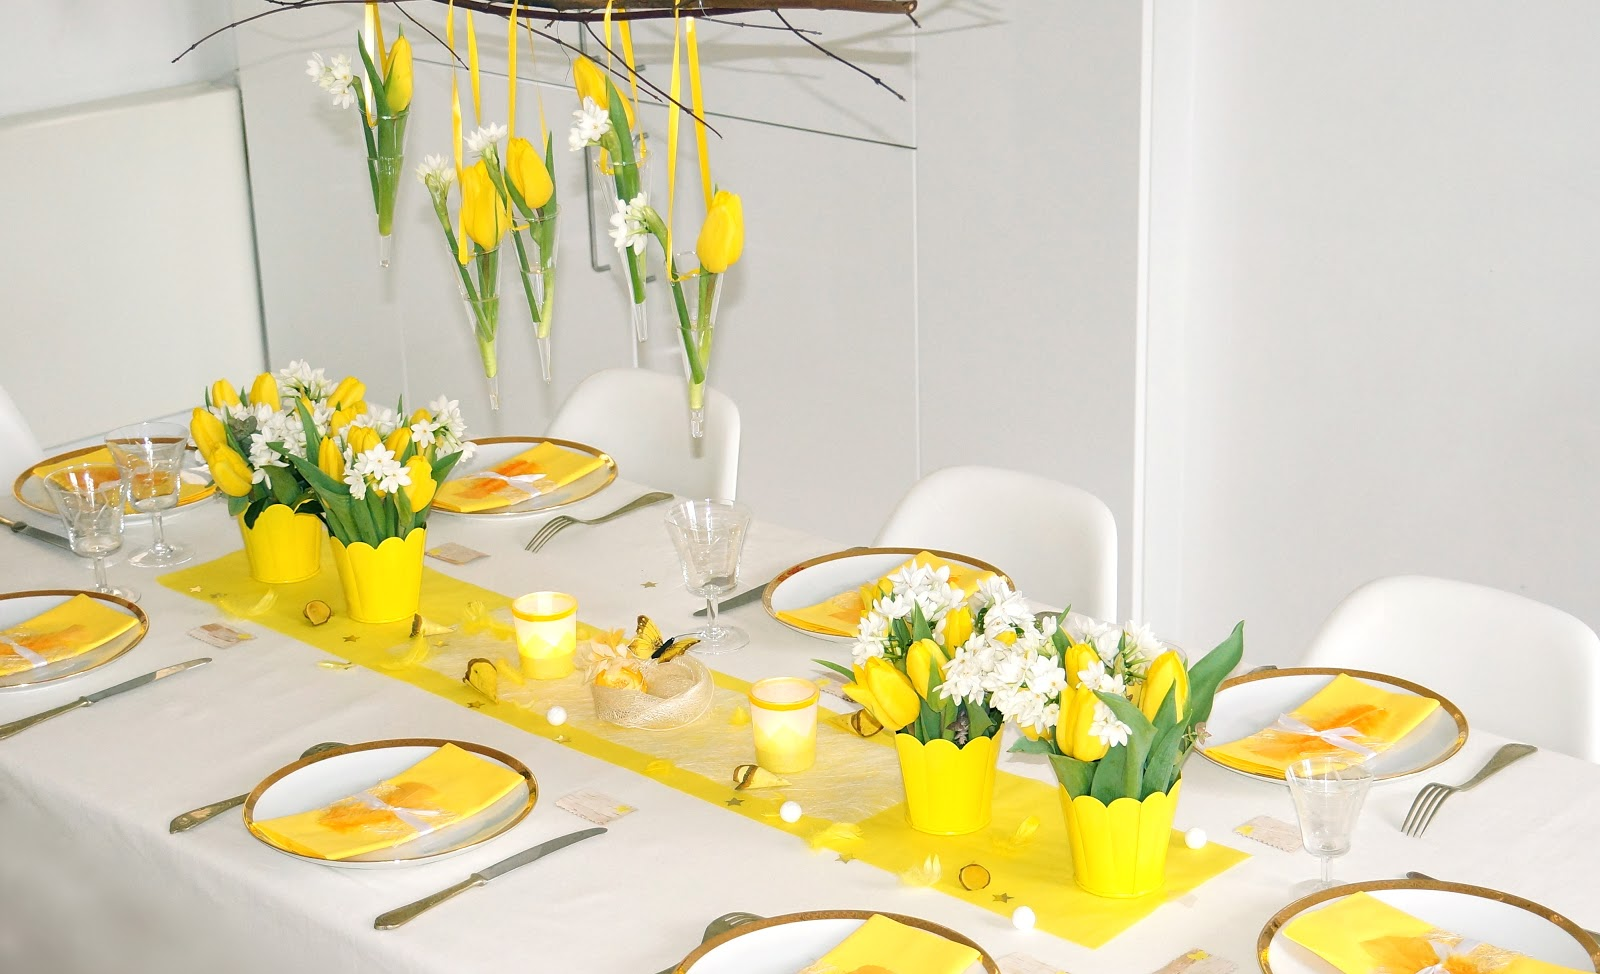 Ma boutique d co table d coration de table jaune printemps une table qui - Table de paques deco ...